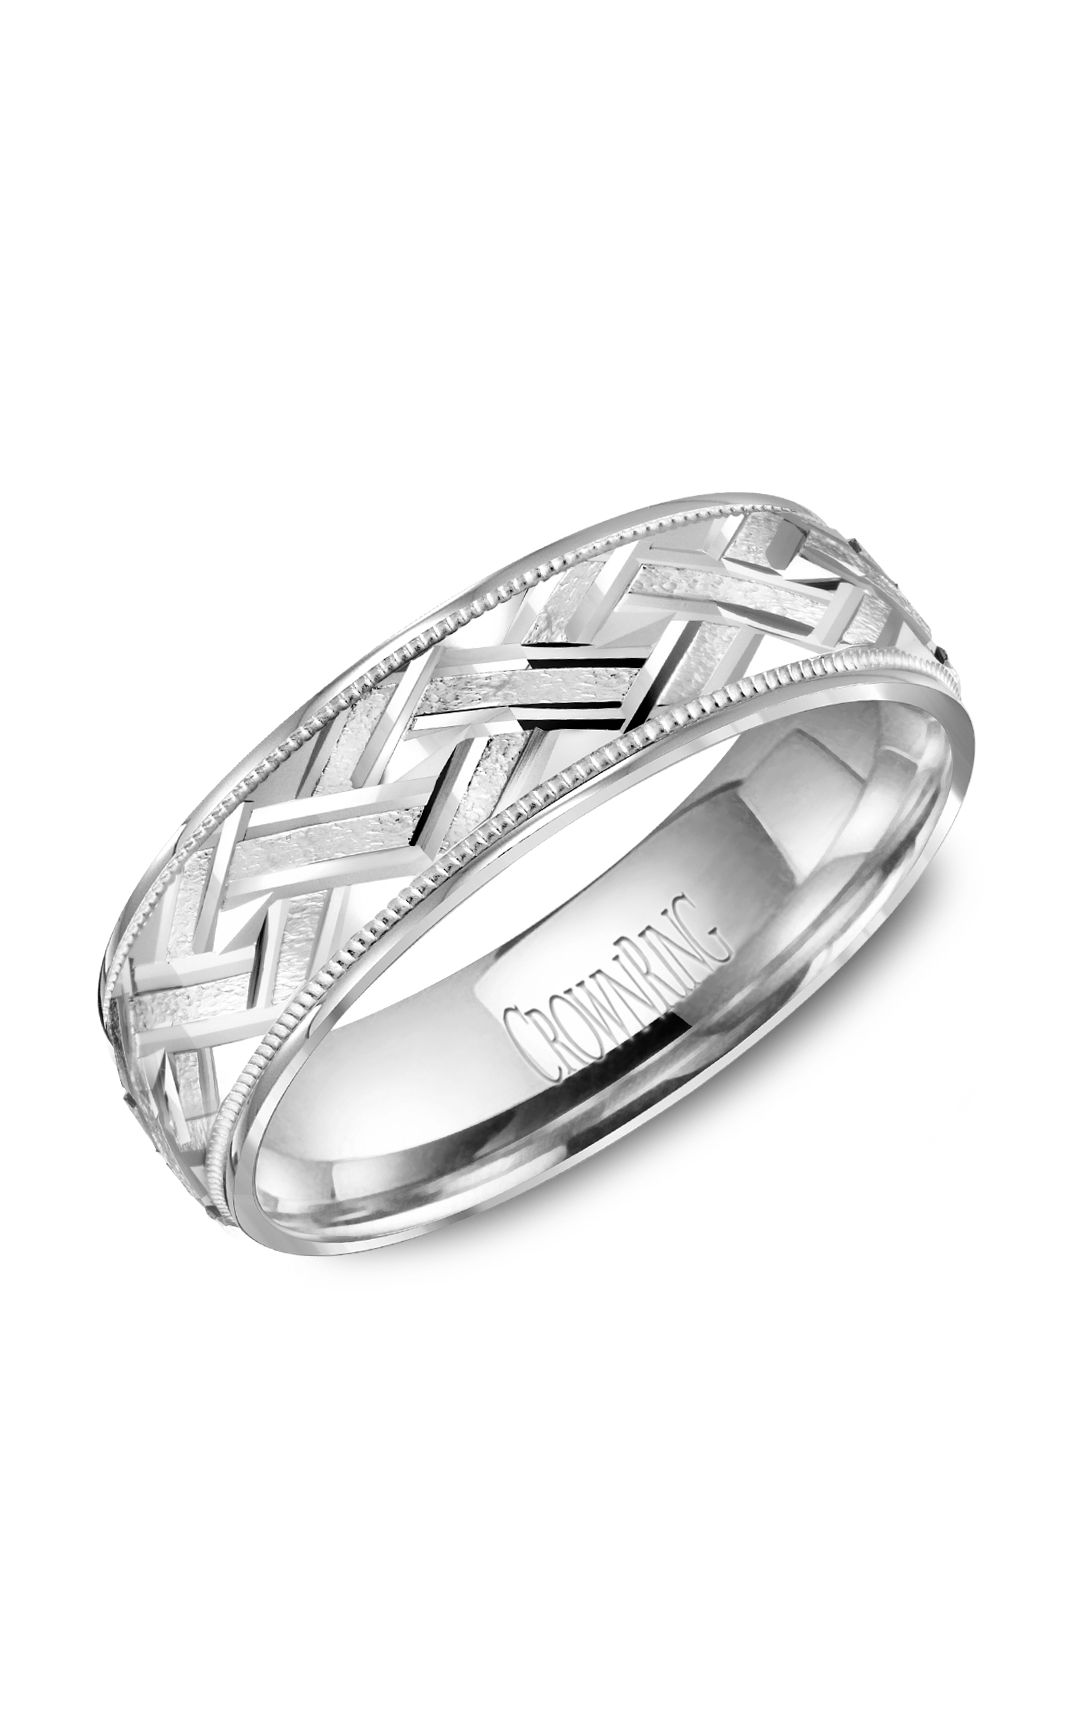 Crown Ring Men's Wedding Band WB-8073 product image